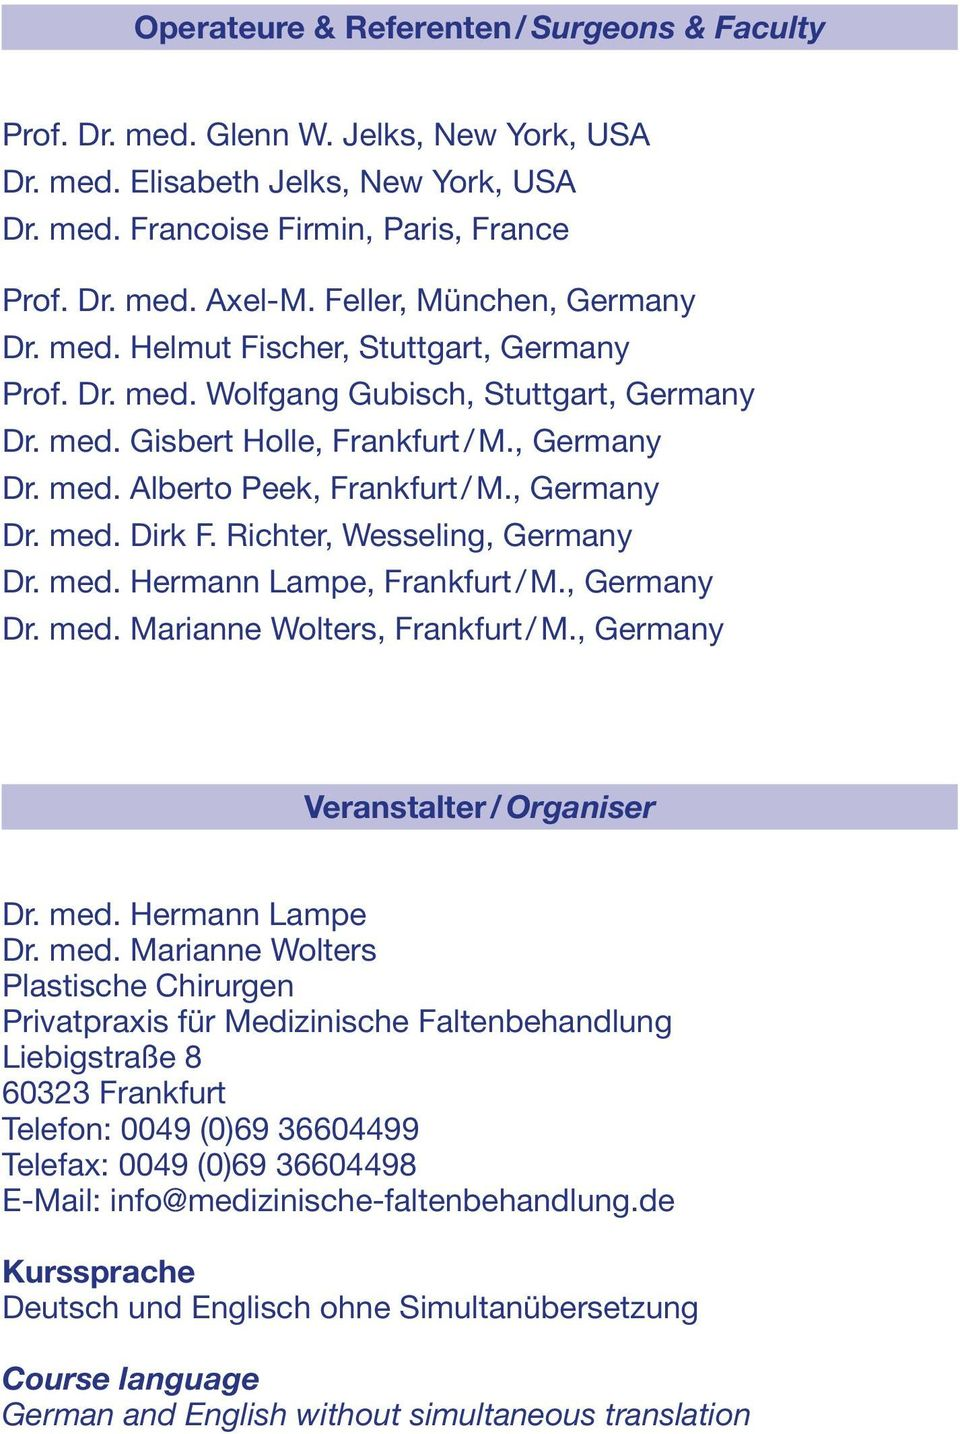 , Germany Dr. med. Dirk F. Richter, Wesseling, Germany Dr. med. Hermann Lampe, Frankfurt / M., Germany Dr. med. Marianne Wolters, Frankfurt / M., Germany Veranstalter / Organiser Dr. med. Hermann Lampe Dr.